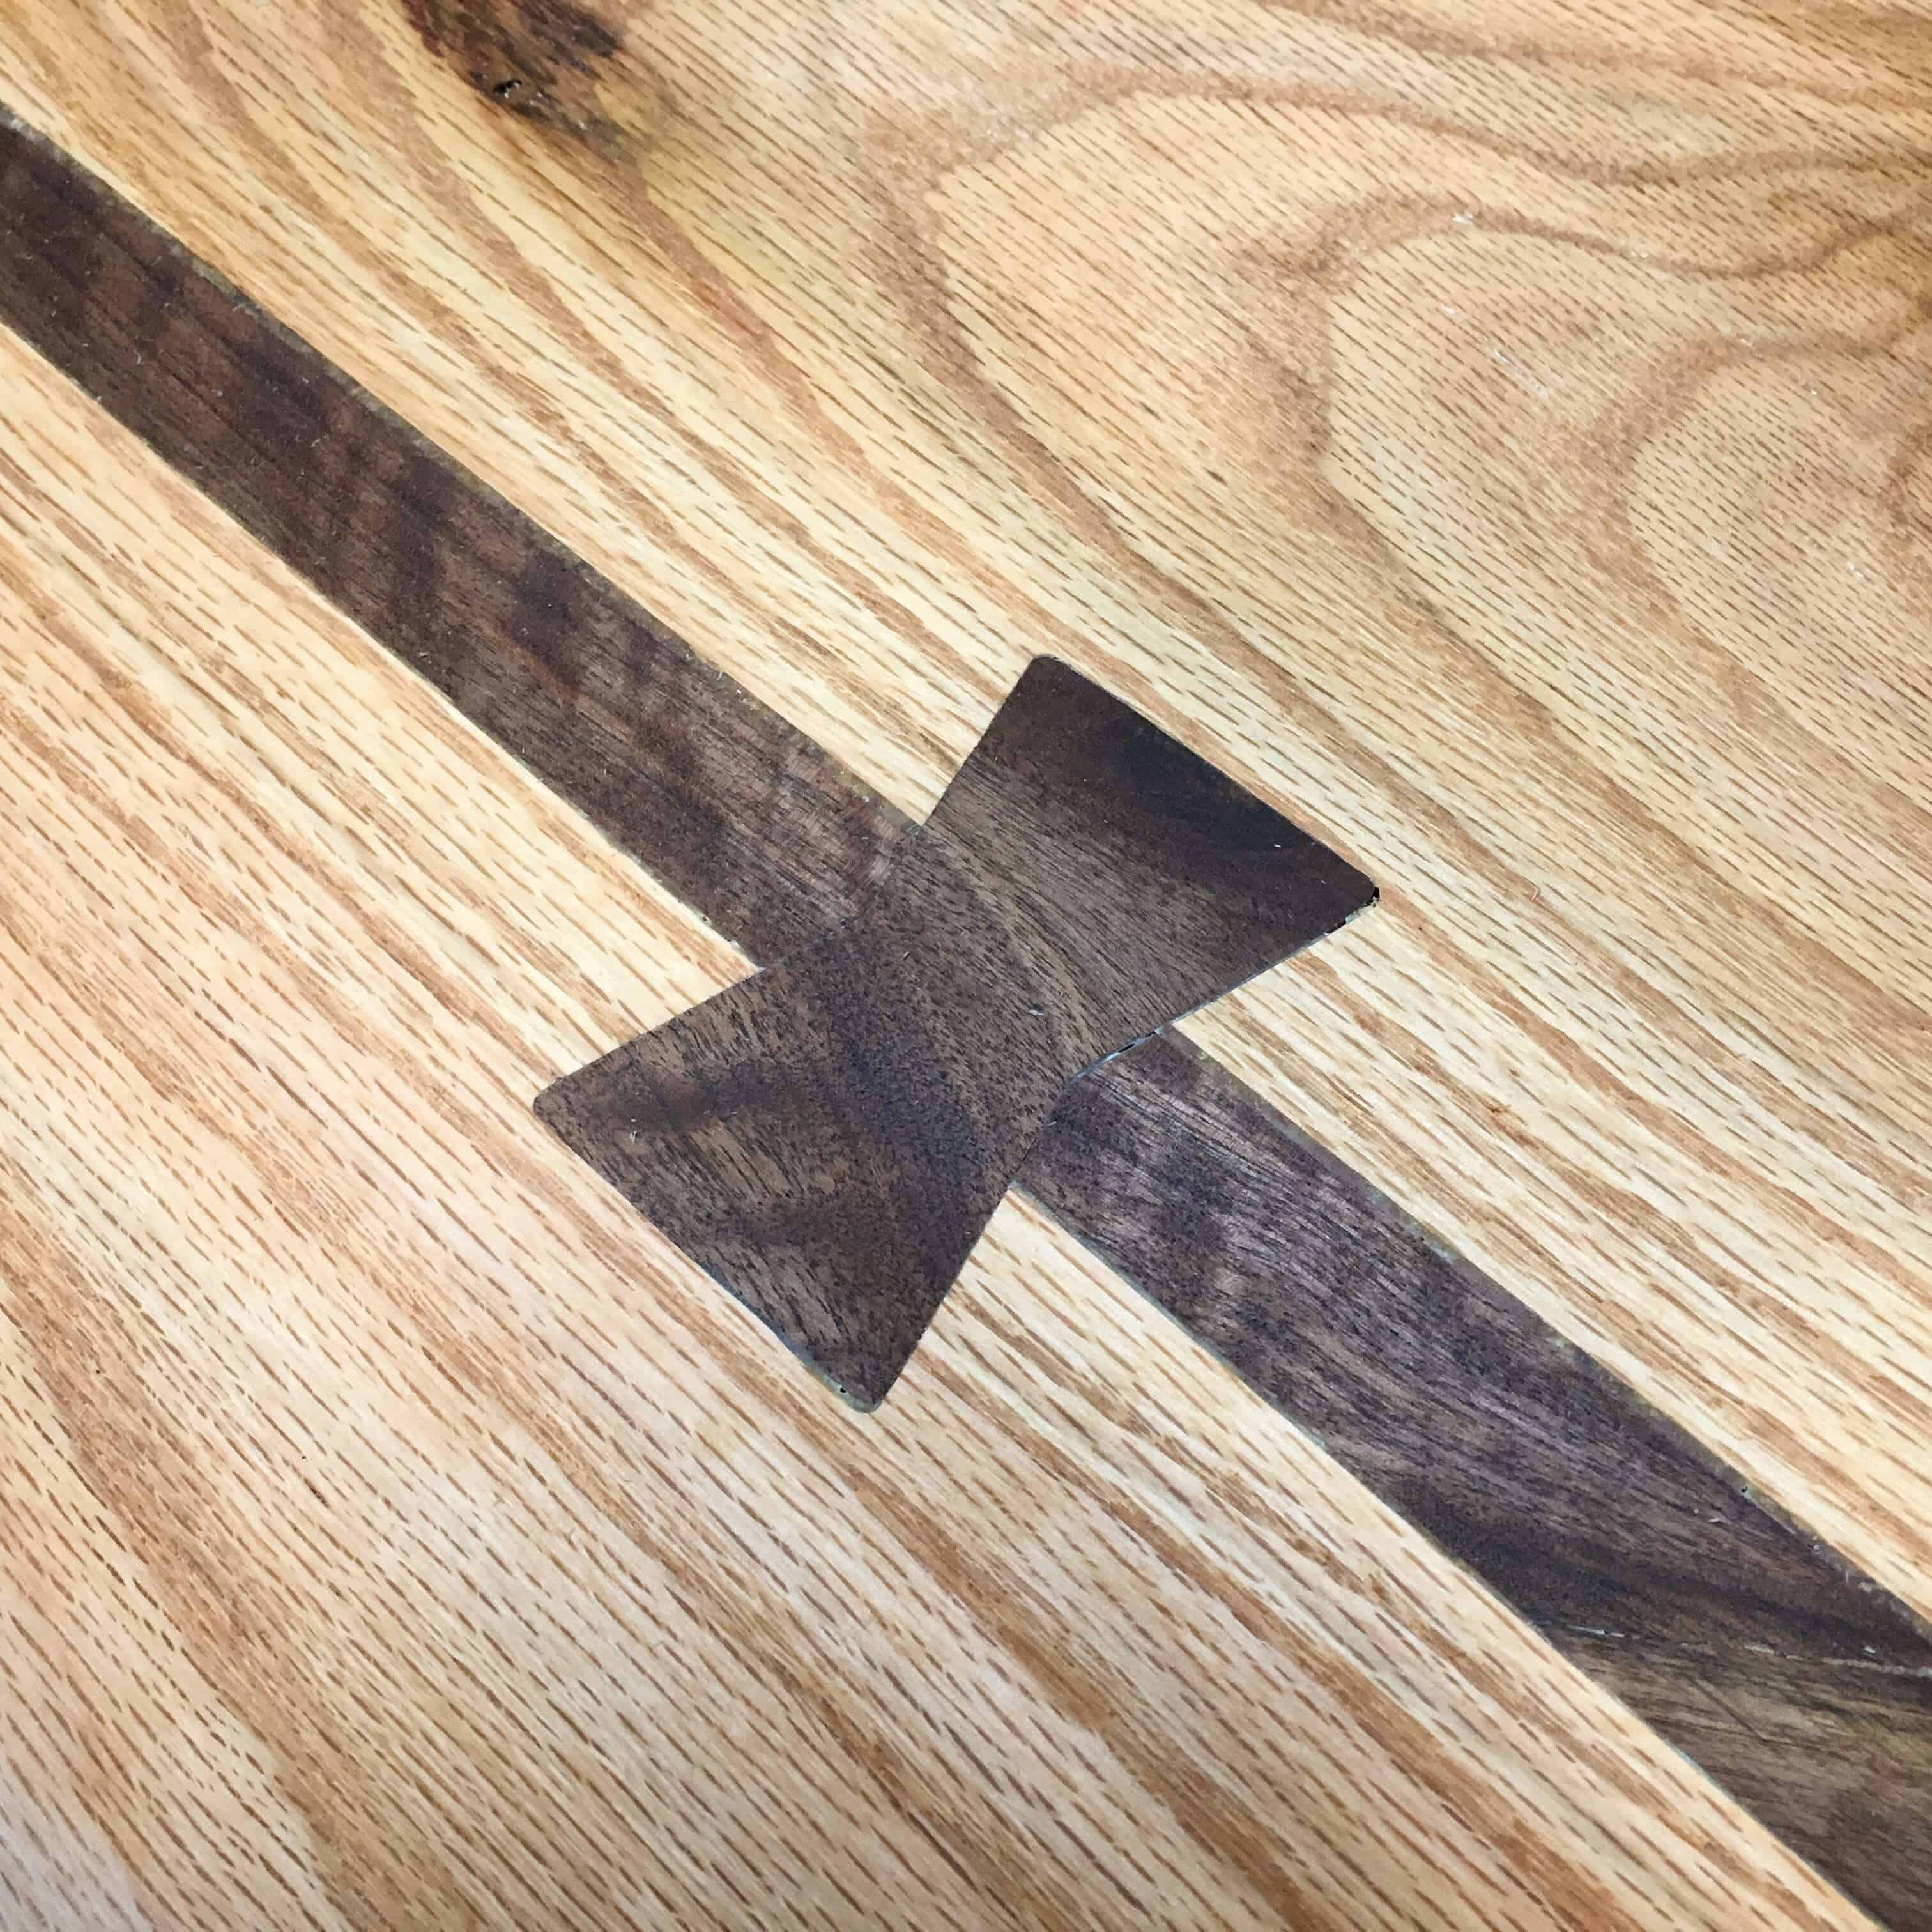 How To Add Bow Tie Inlays To Your Builds With A Router